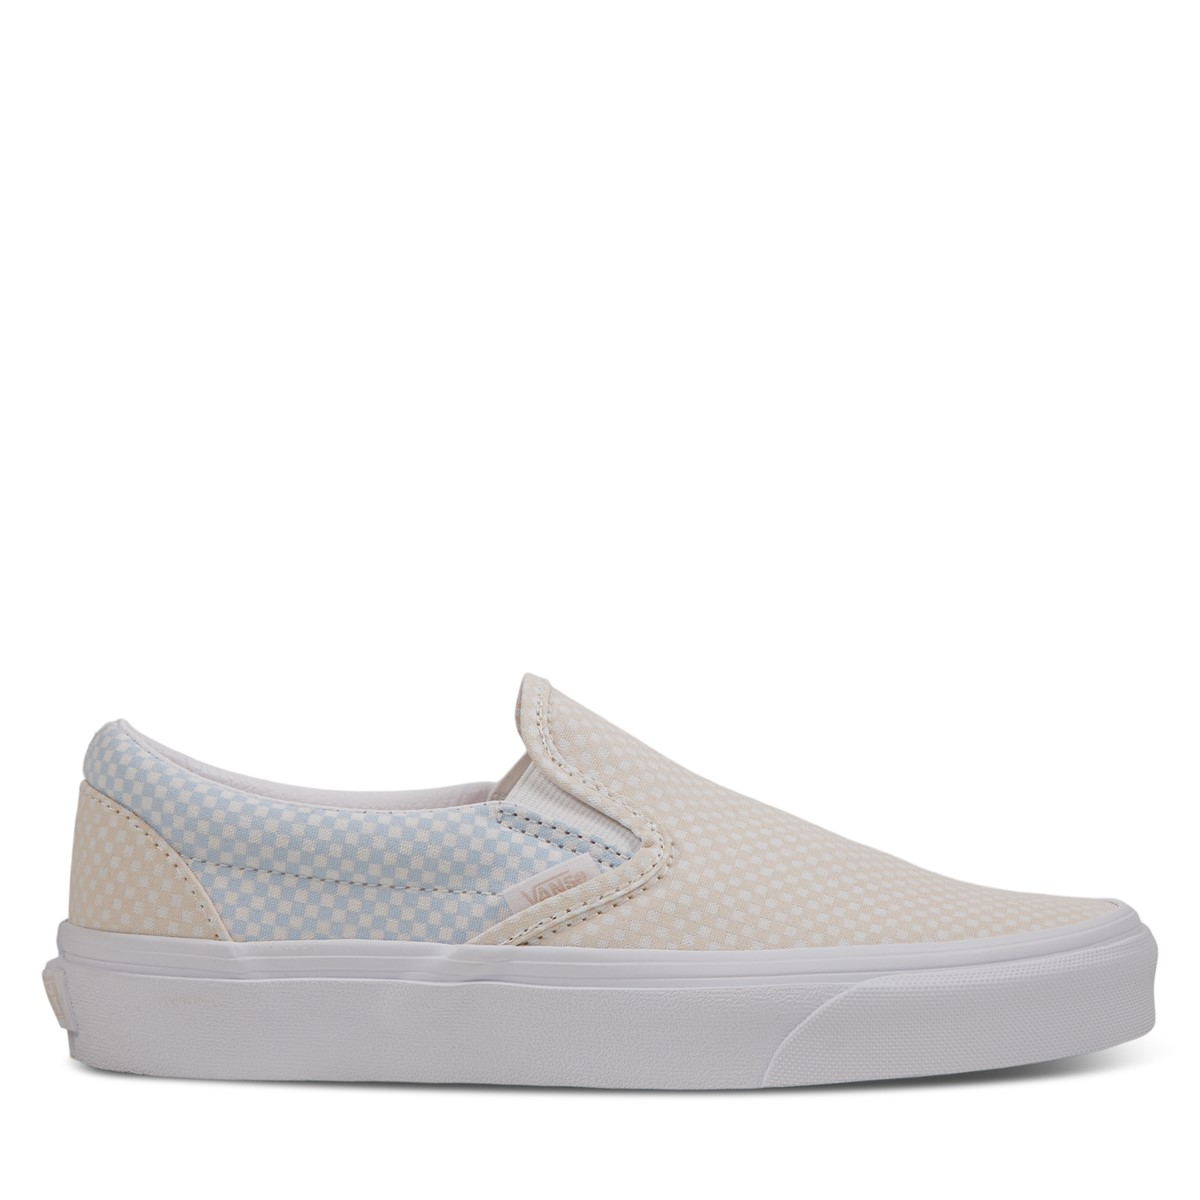 Women's Classic Slip-Ons Sneakers in Light Blue/Pink